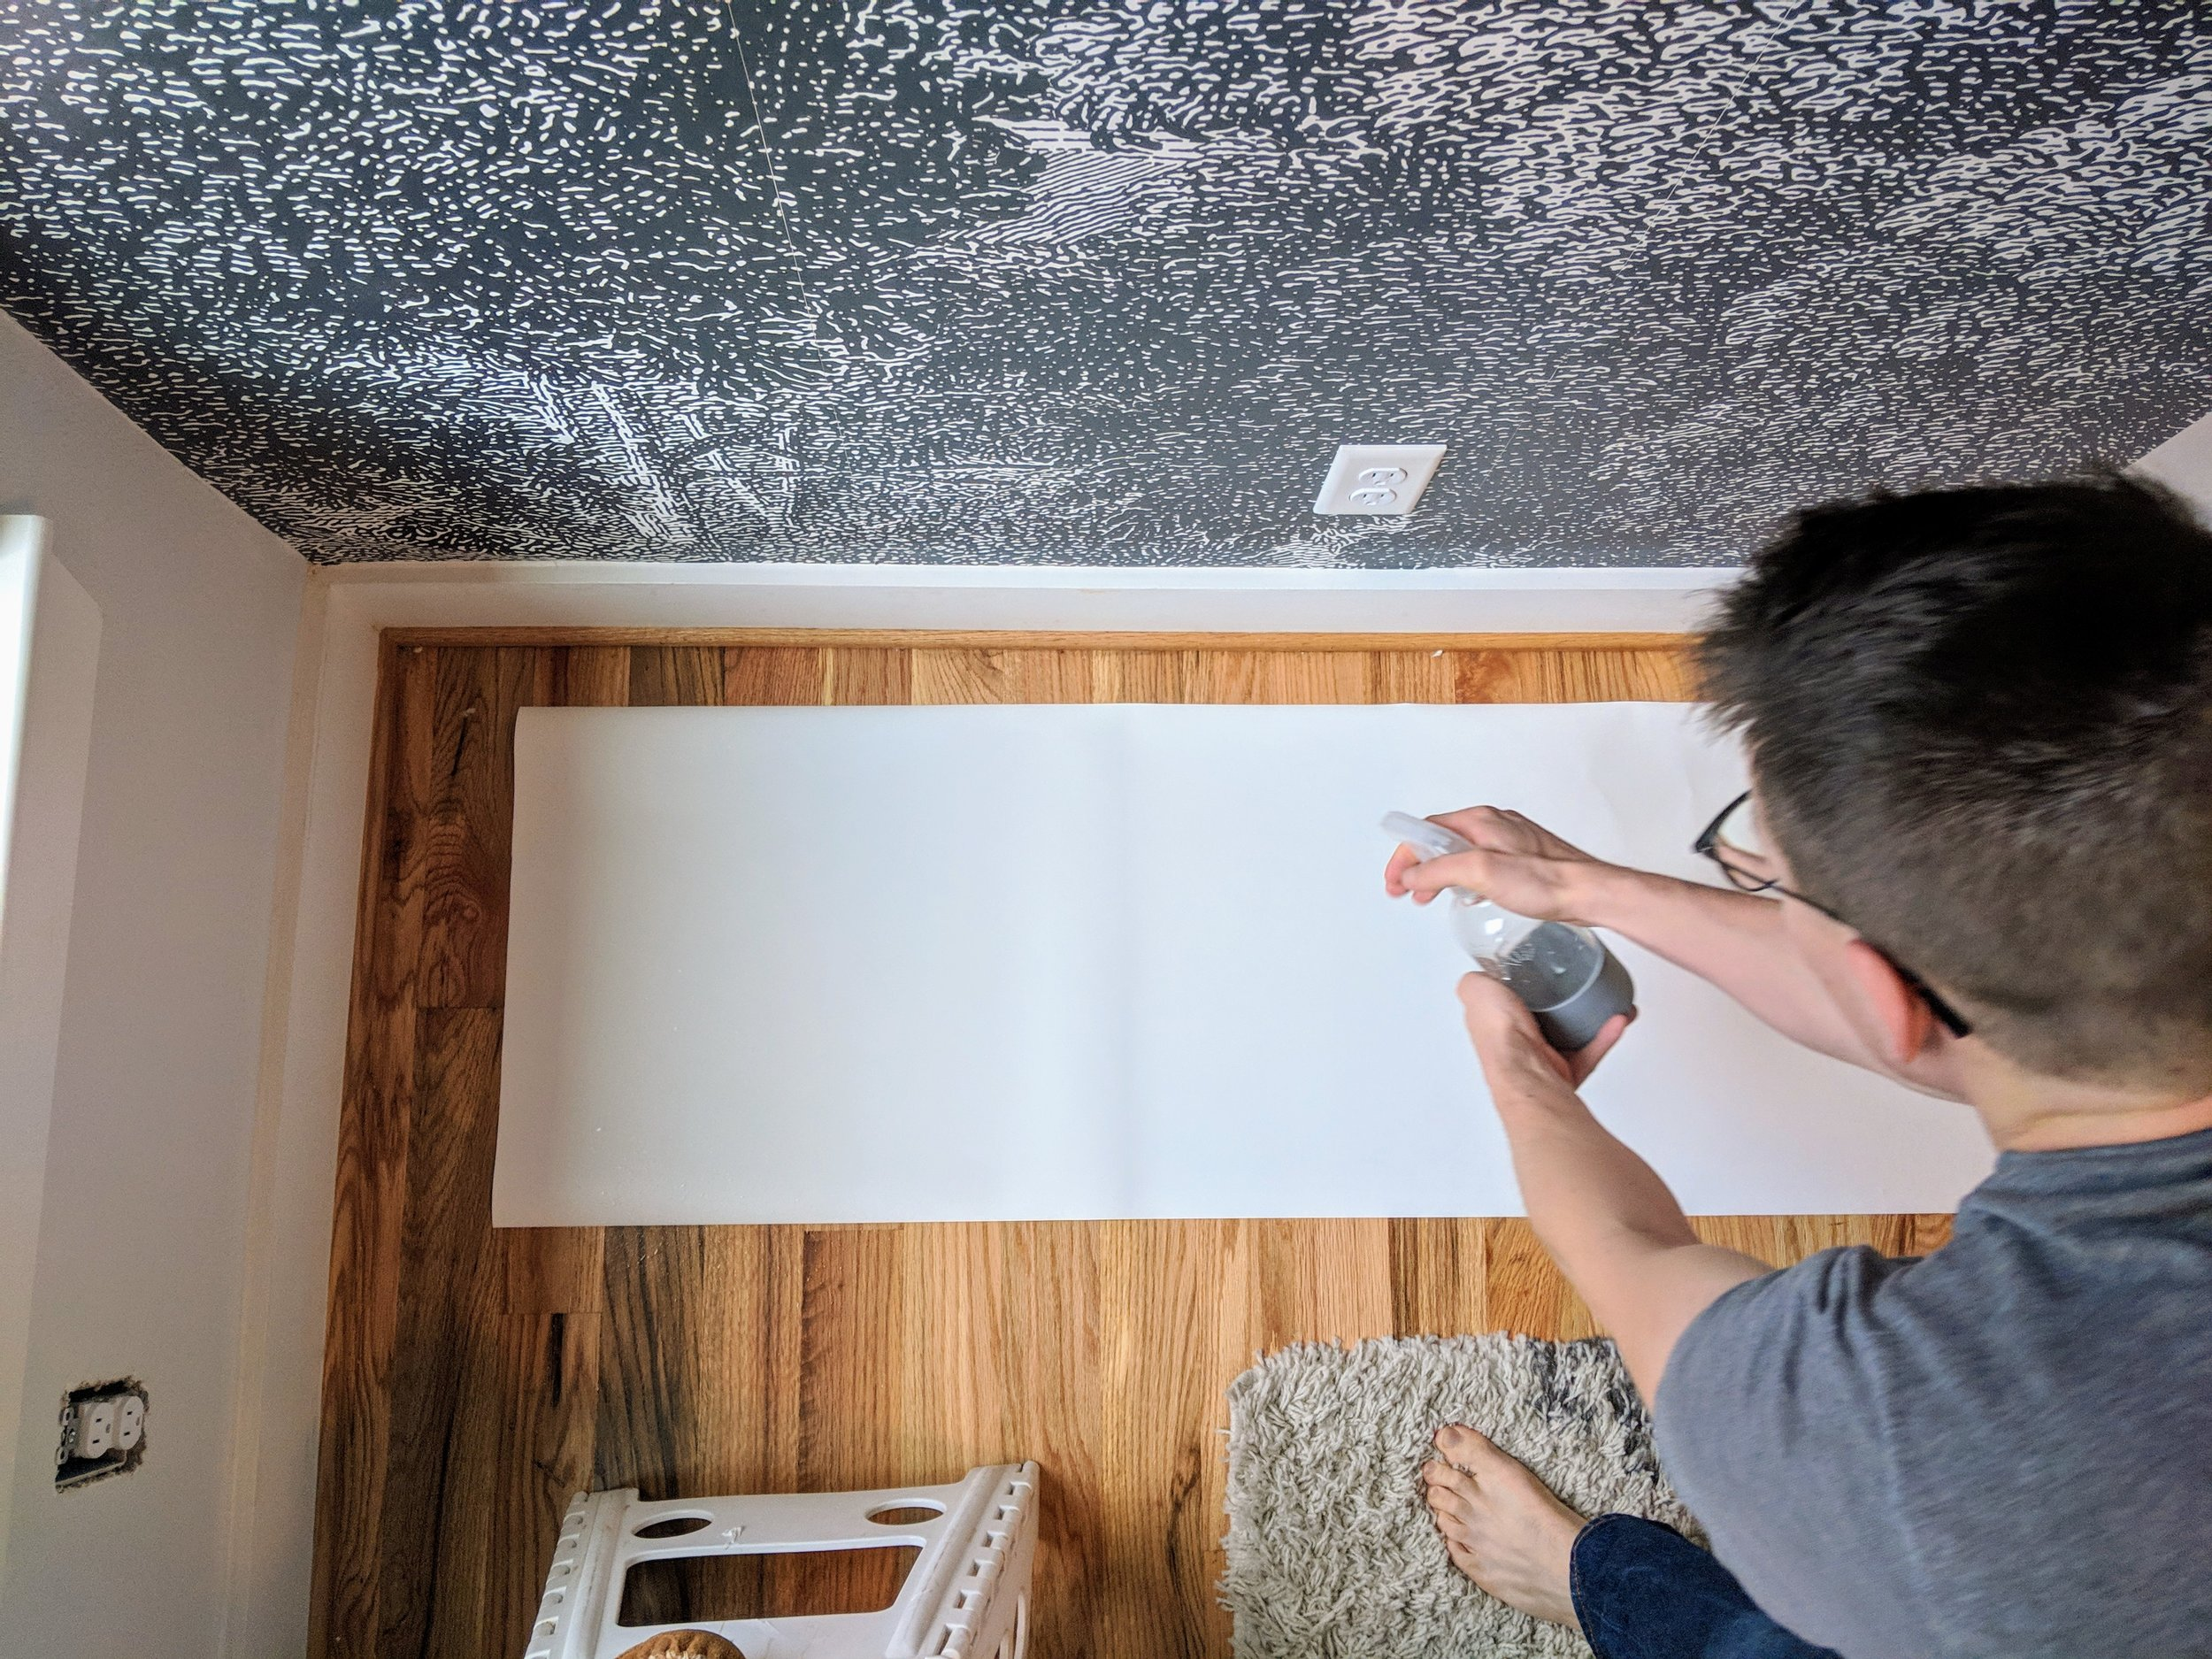 Installation requires laying the paper on a flat surface and misting the wallpaper with a spray bottle.